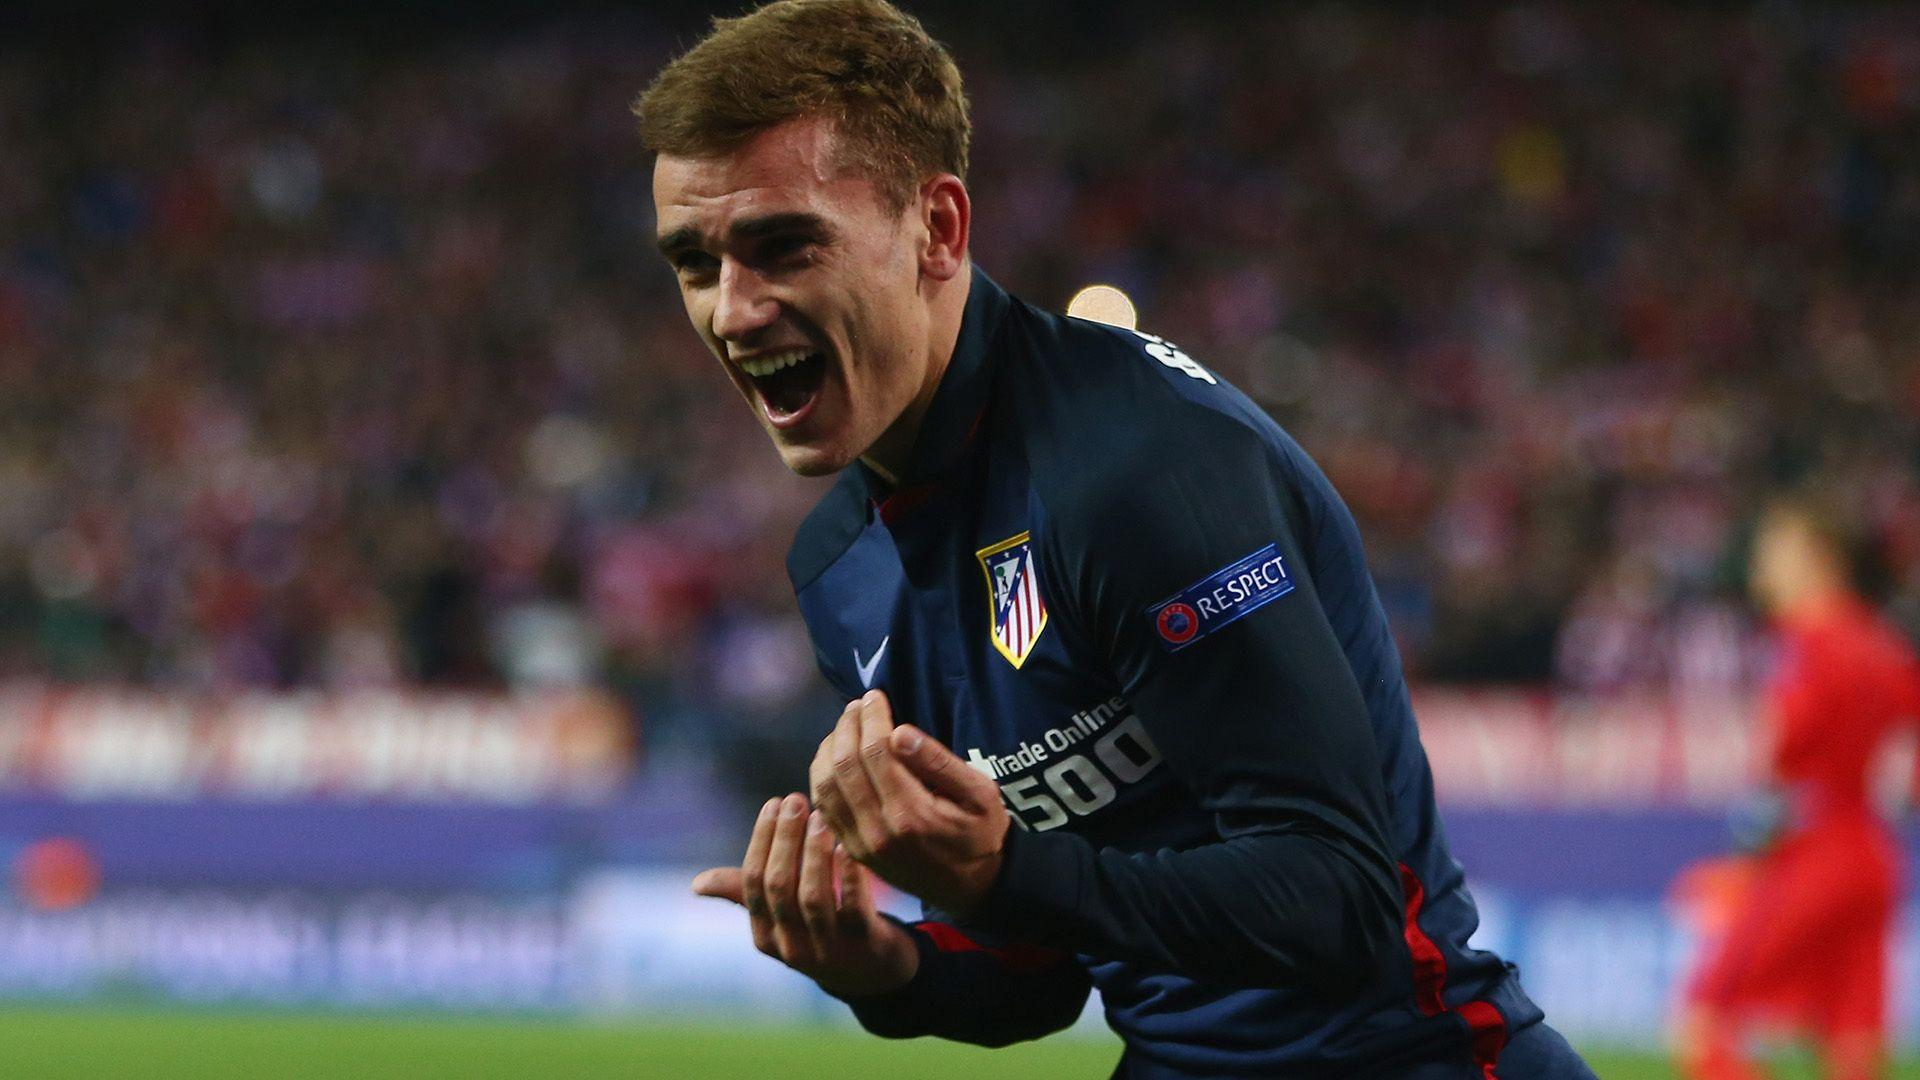 Antoine Griezmann Wallpapers Images Photos Pictures Backgrounds